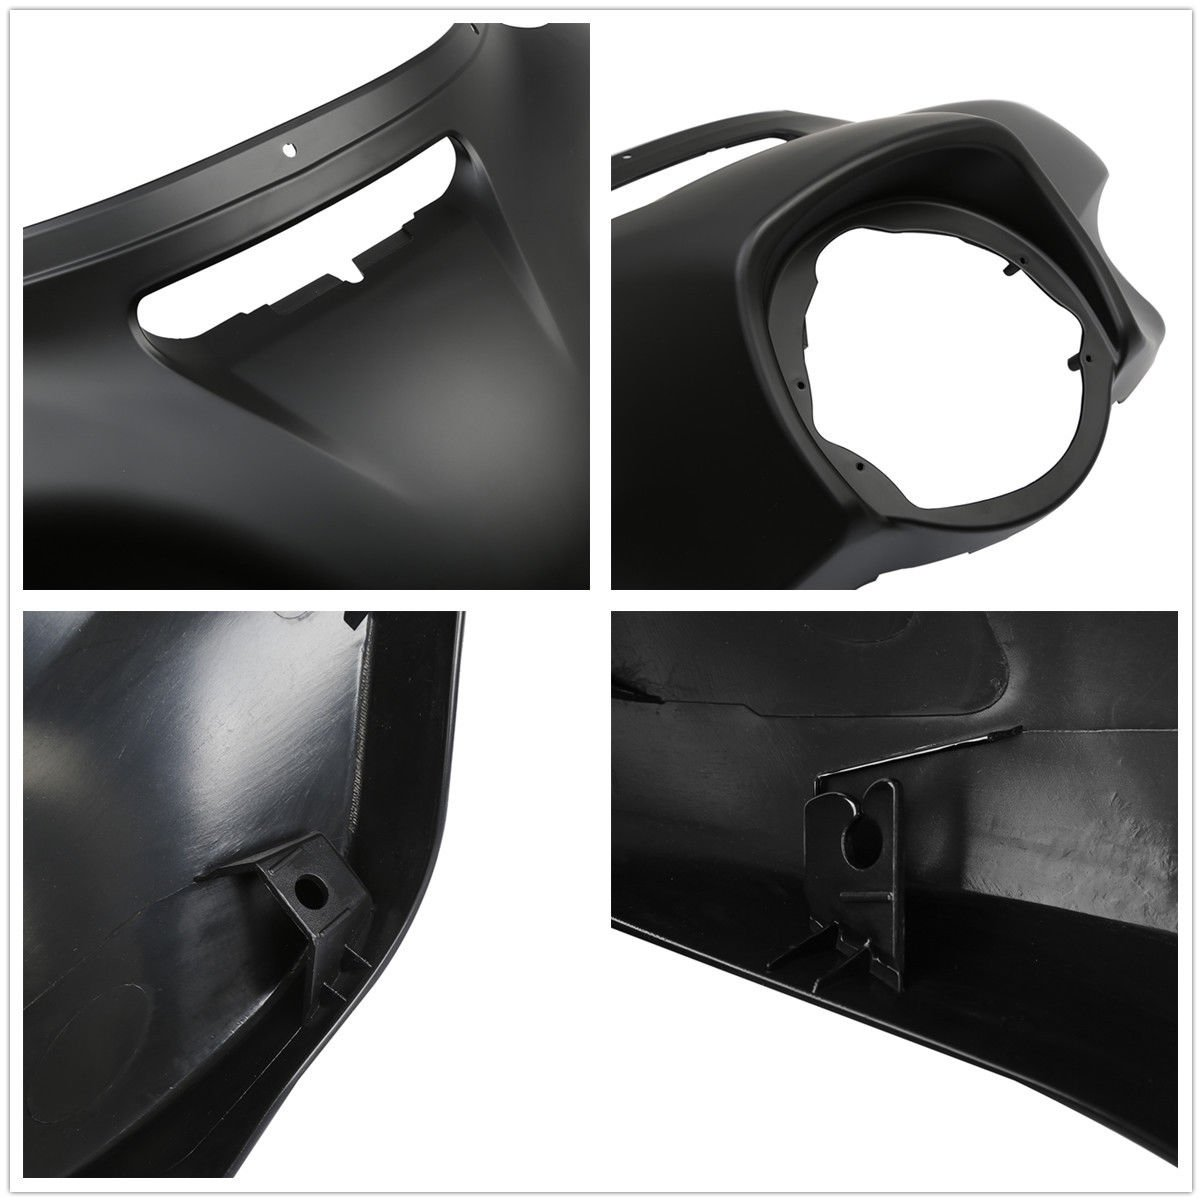 TCMT ABS Vented Outer Fairing Body Fits For 2014-2019 Harley Davidson Touring Model